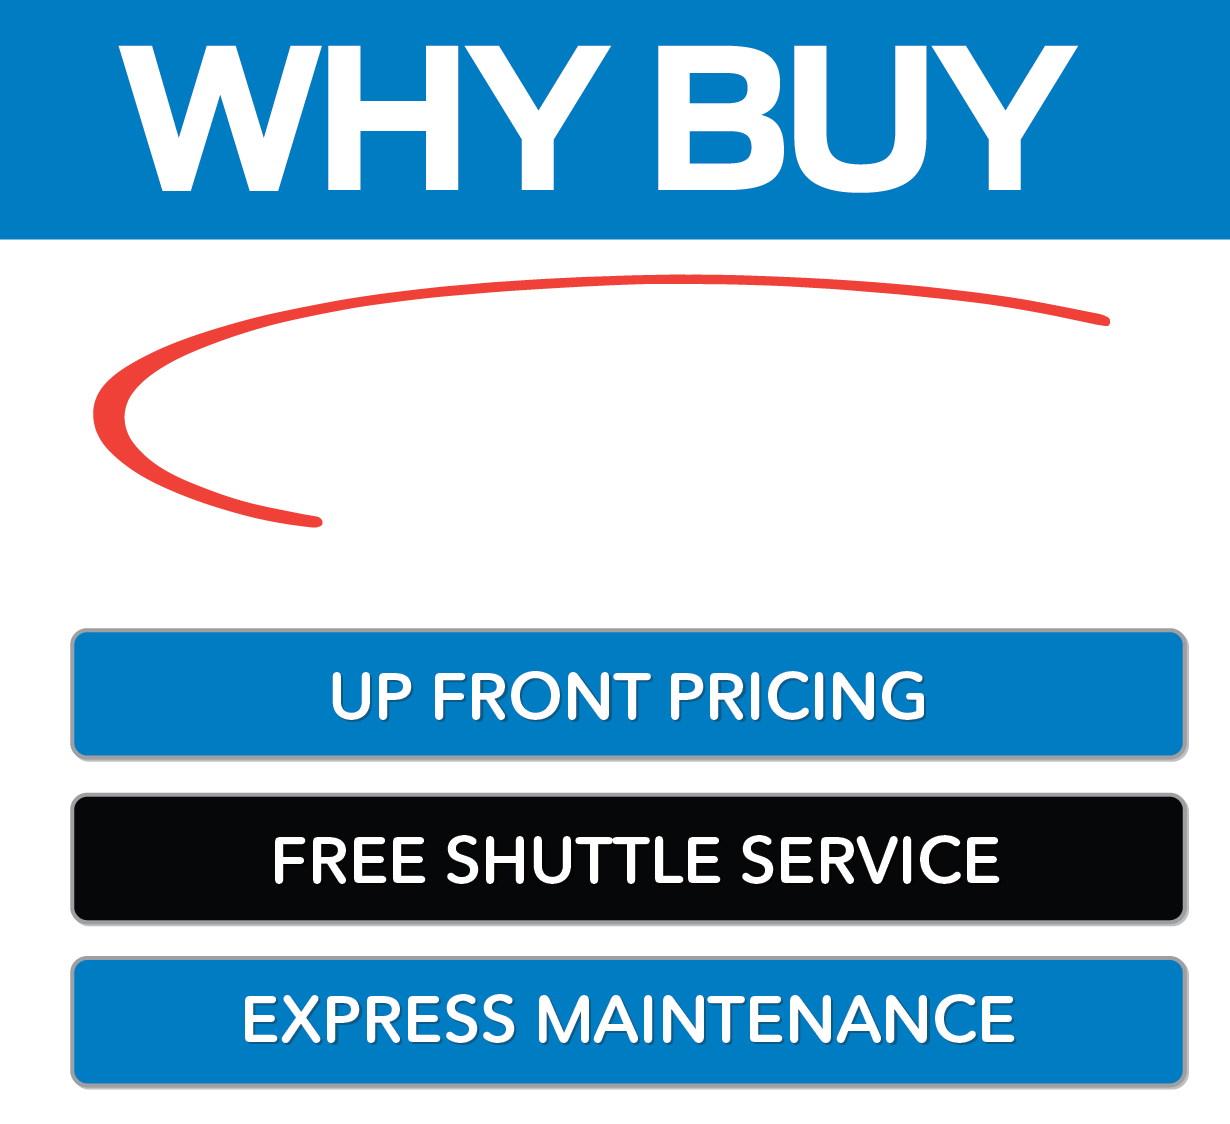 Why Buy From Serra Honda O Fallon Honda Car Dealership Near St Louis